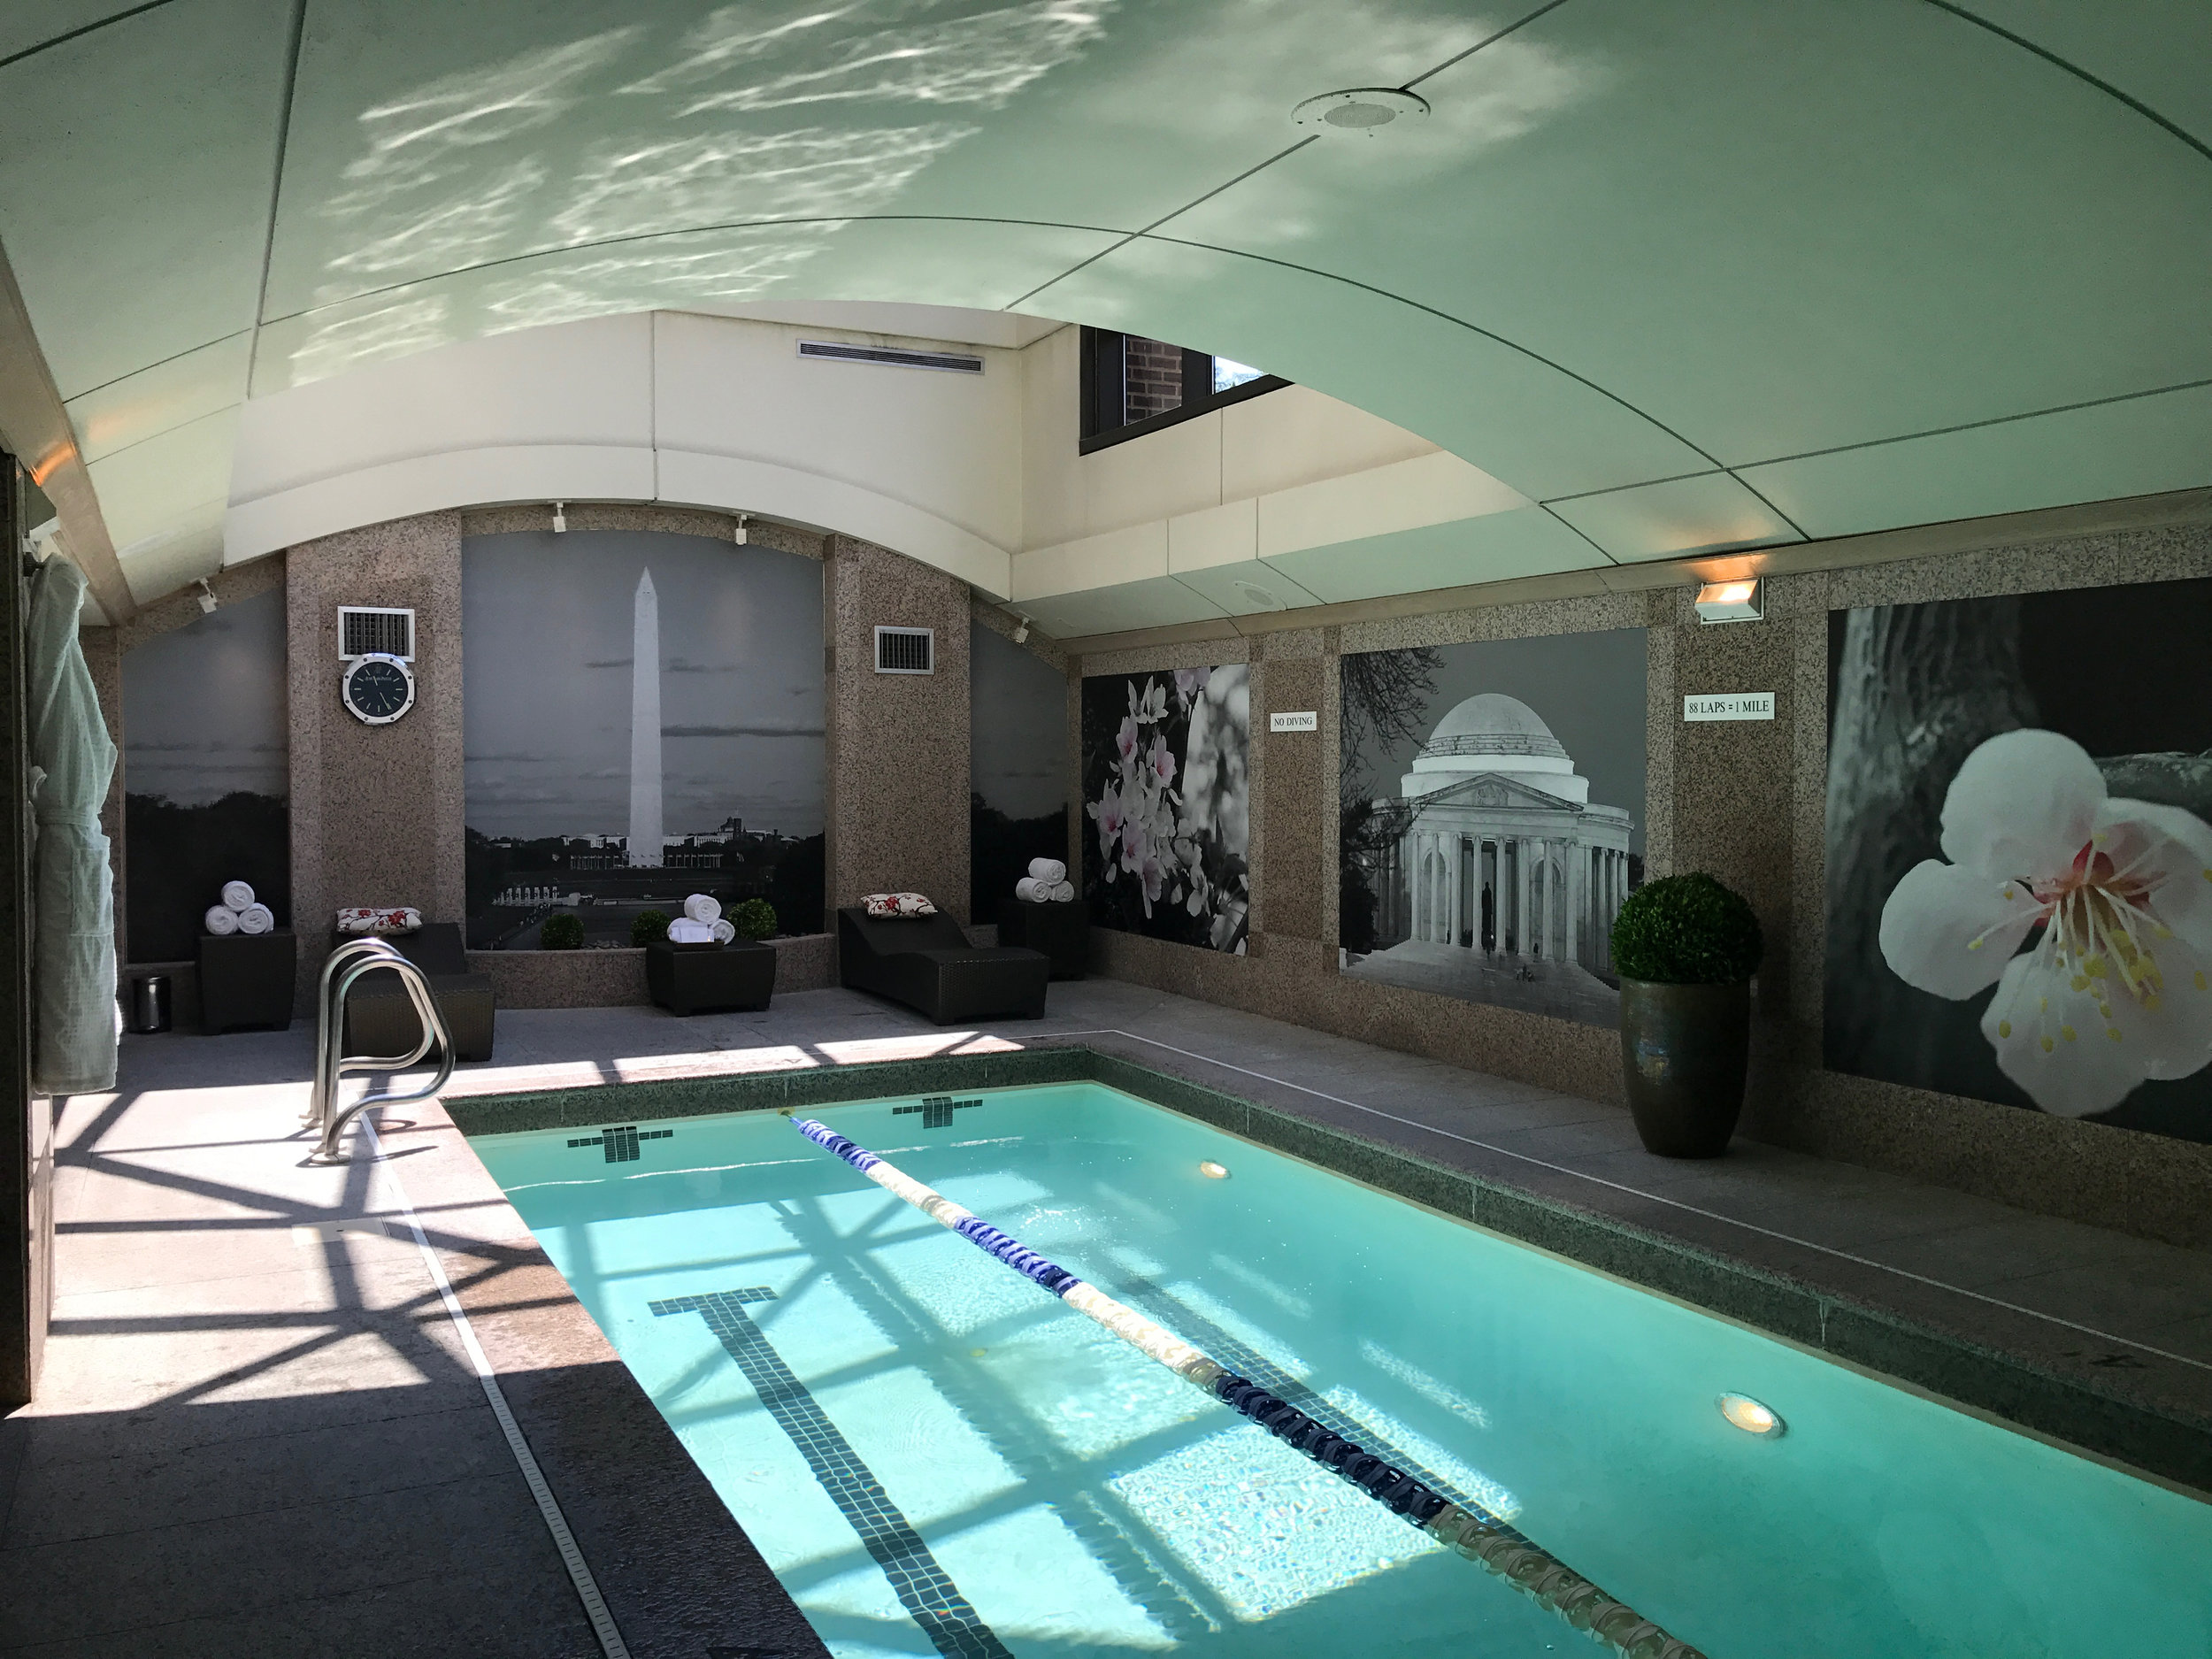 Relax and unwind at the pool